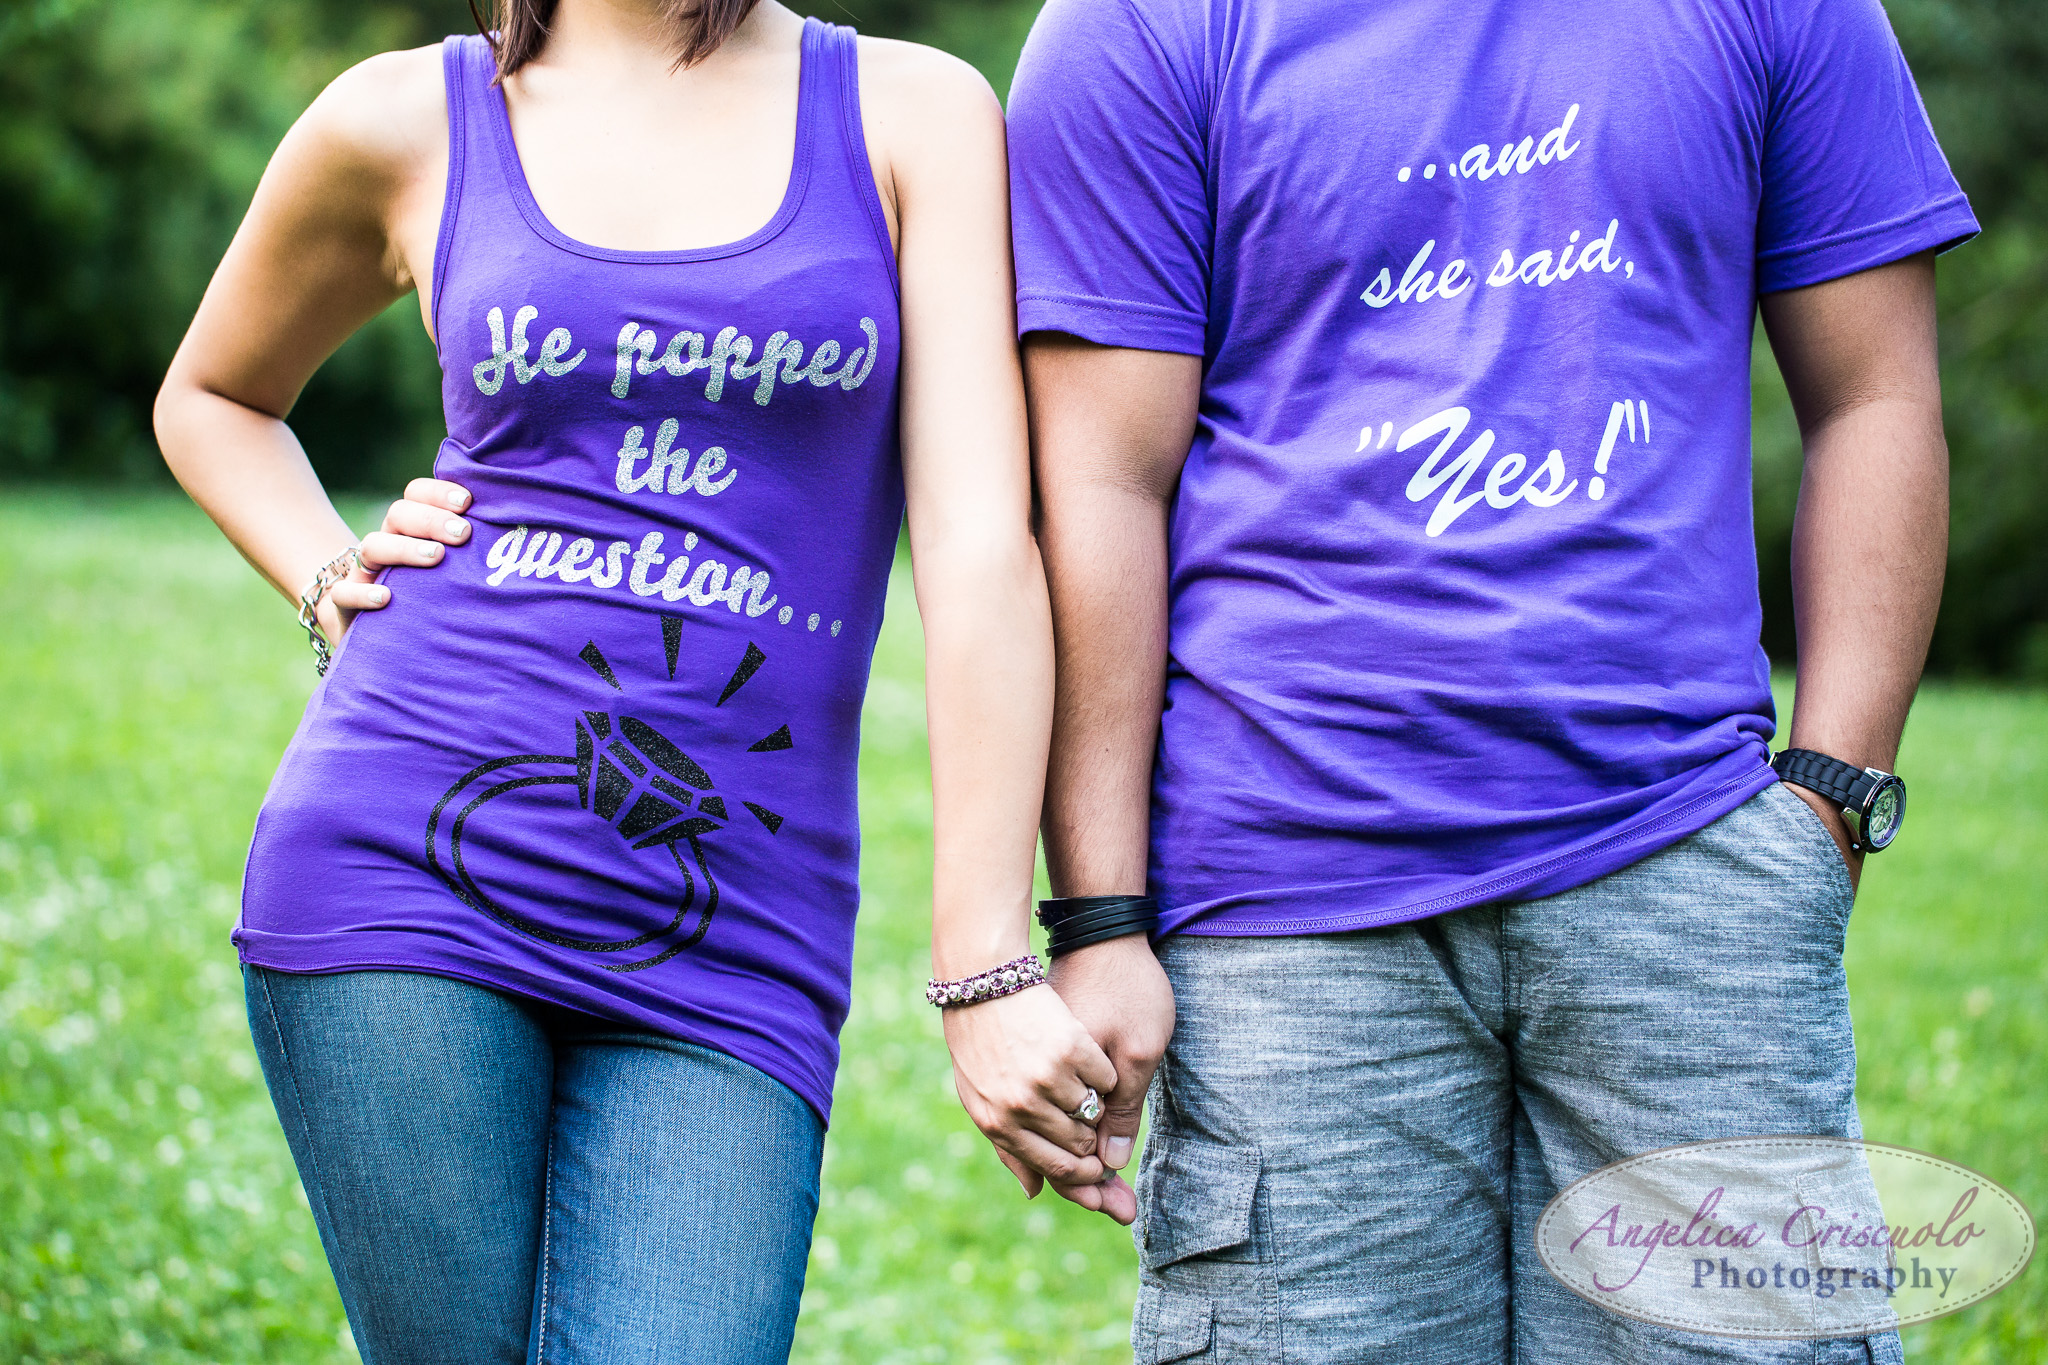 He popped the question and she said yes shirts